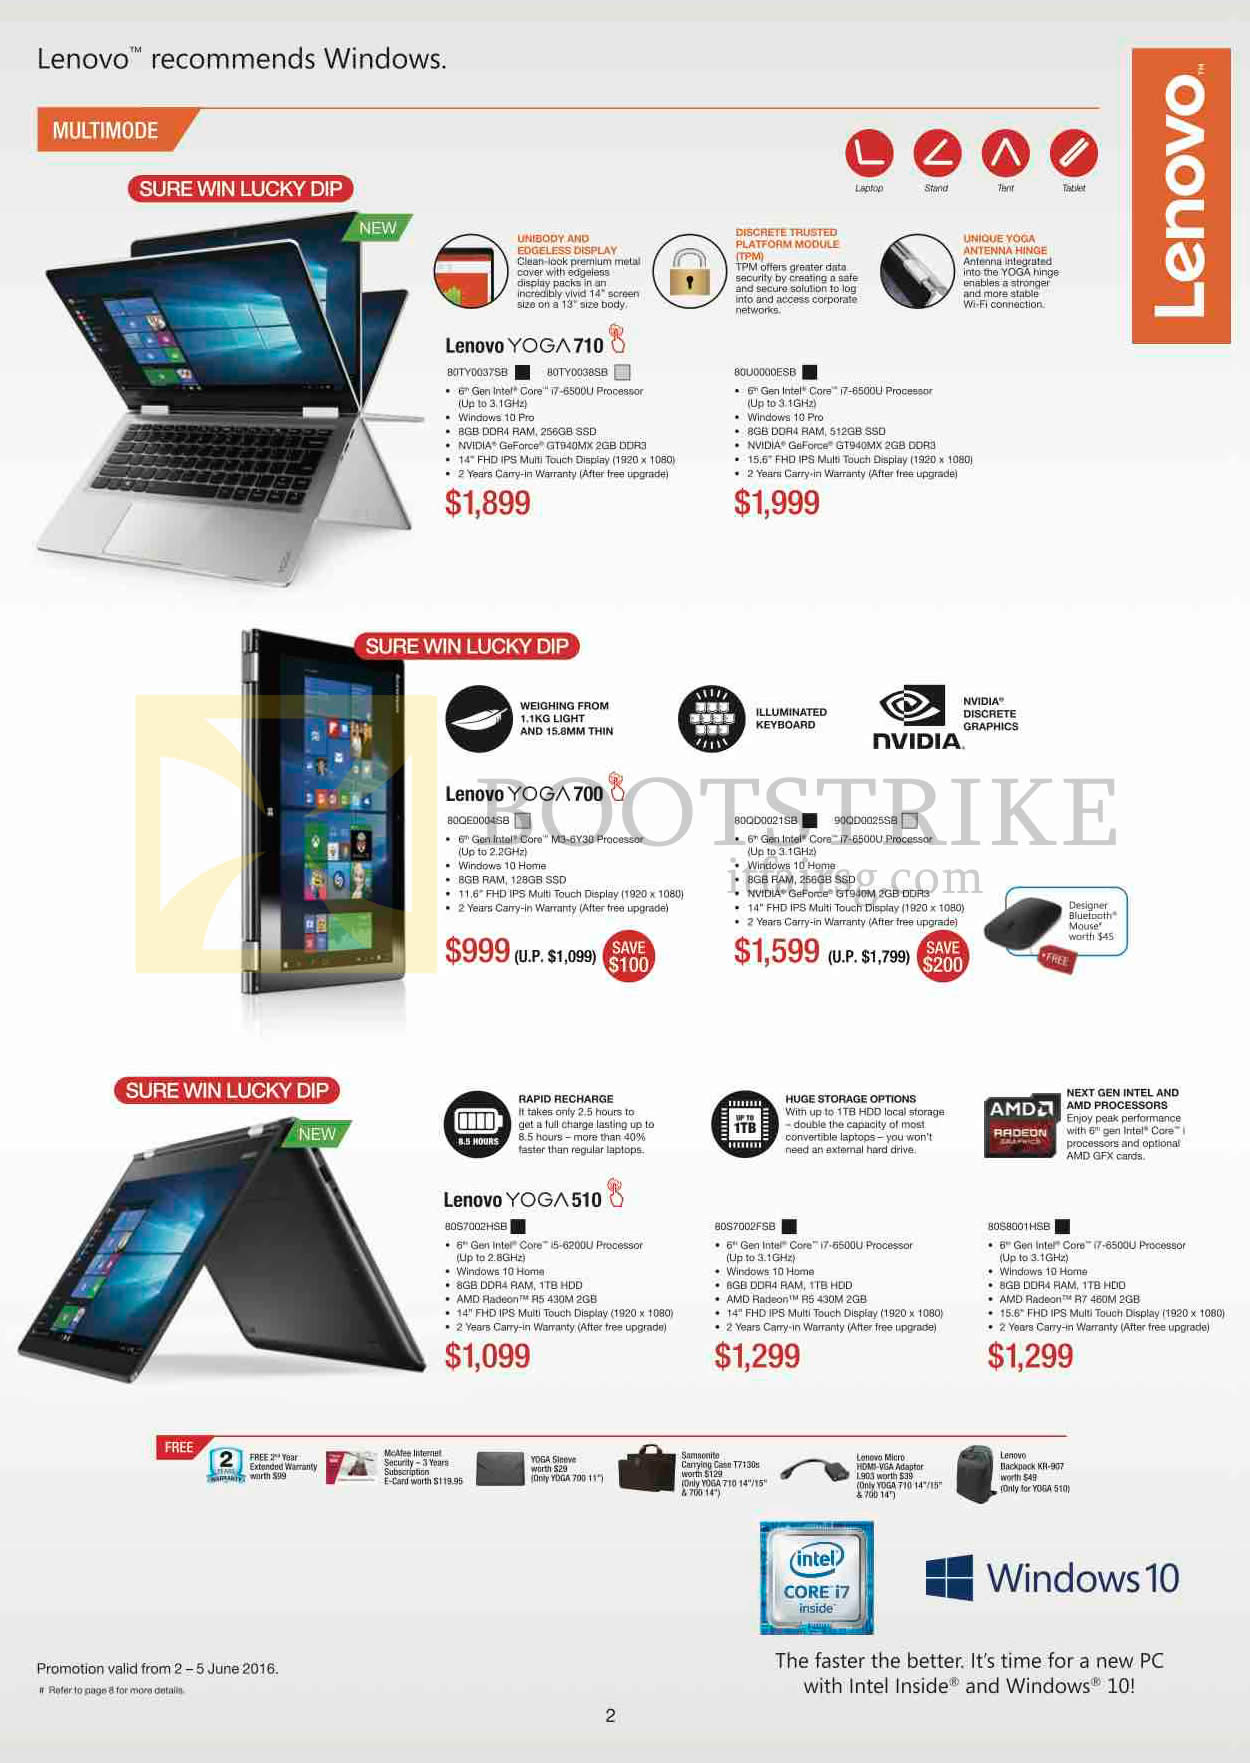 PC SHOW 2016 price list image brochure of Lenovo Notebooks Yoga 710, Yoga 700, Yoga 510